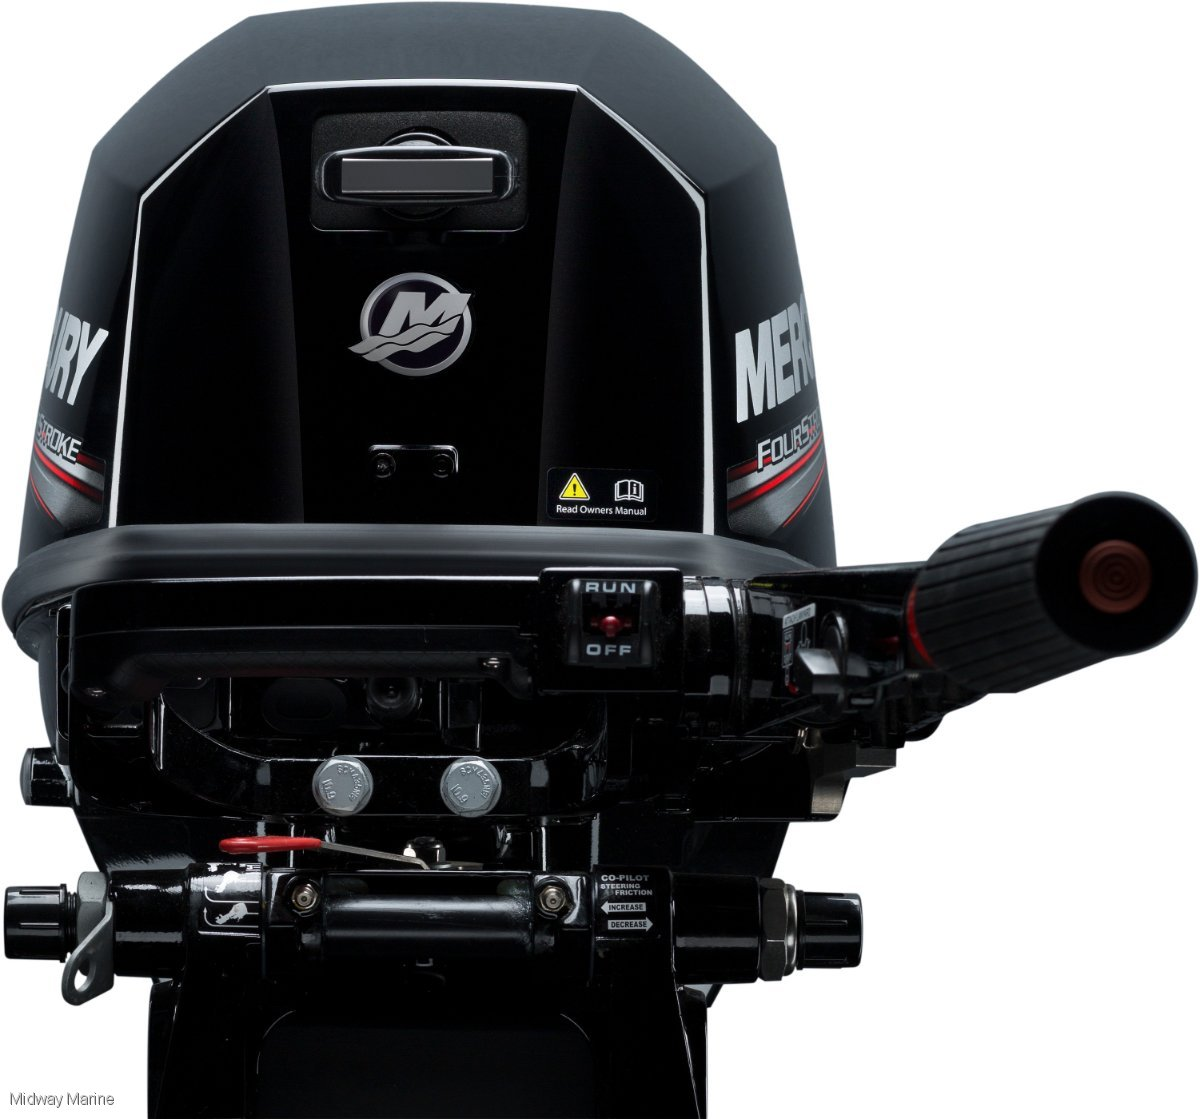 NEW MERCURY 8HP OUTBOARD